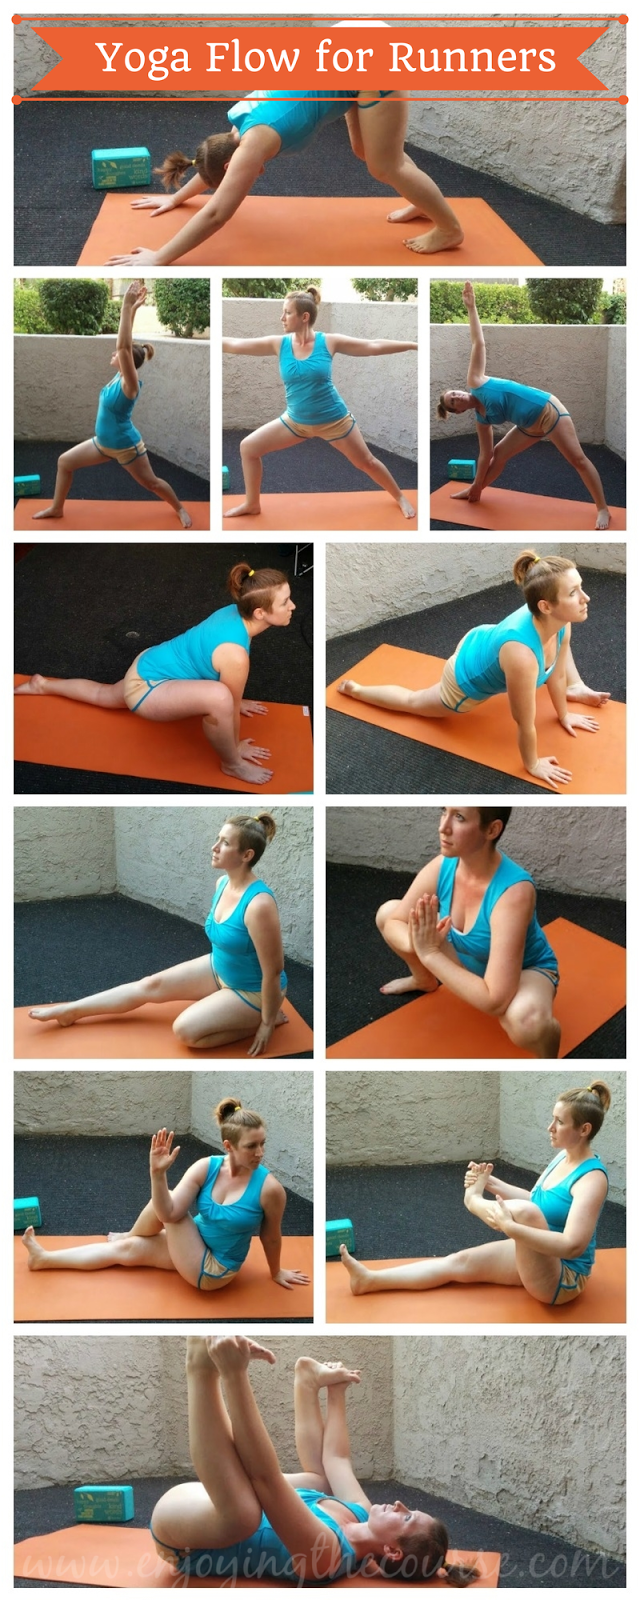 Yoga Flow for Runners